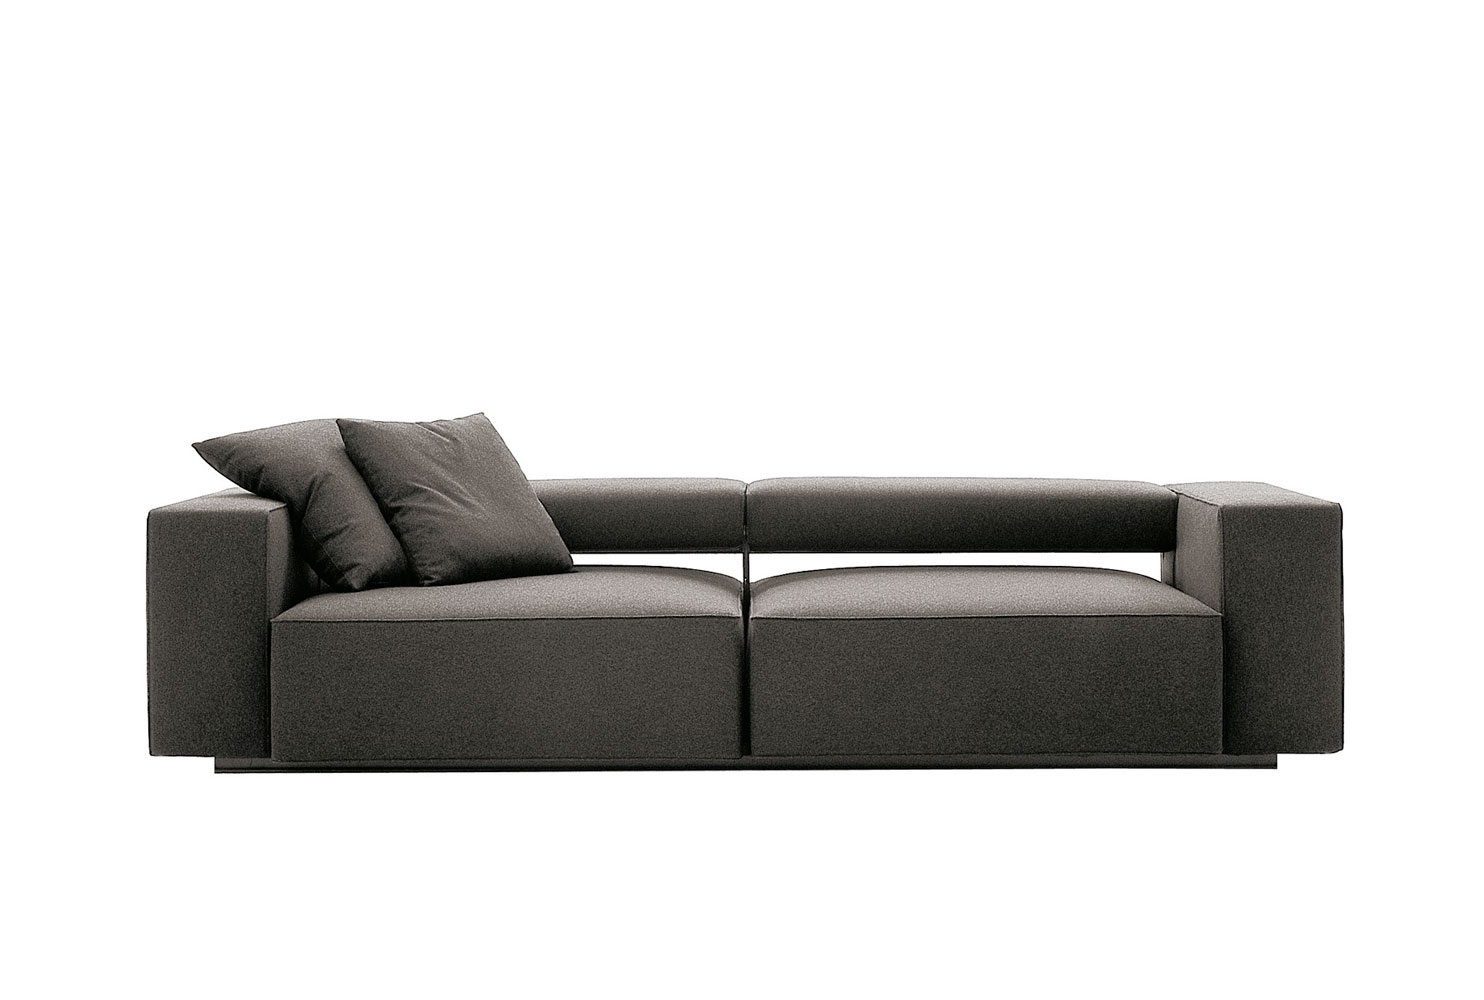 b b italia andy 13 sofa buy from campbell watson uk. Black Bedroom Furniture Sets. Home Design Ideas